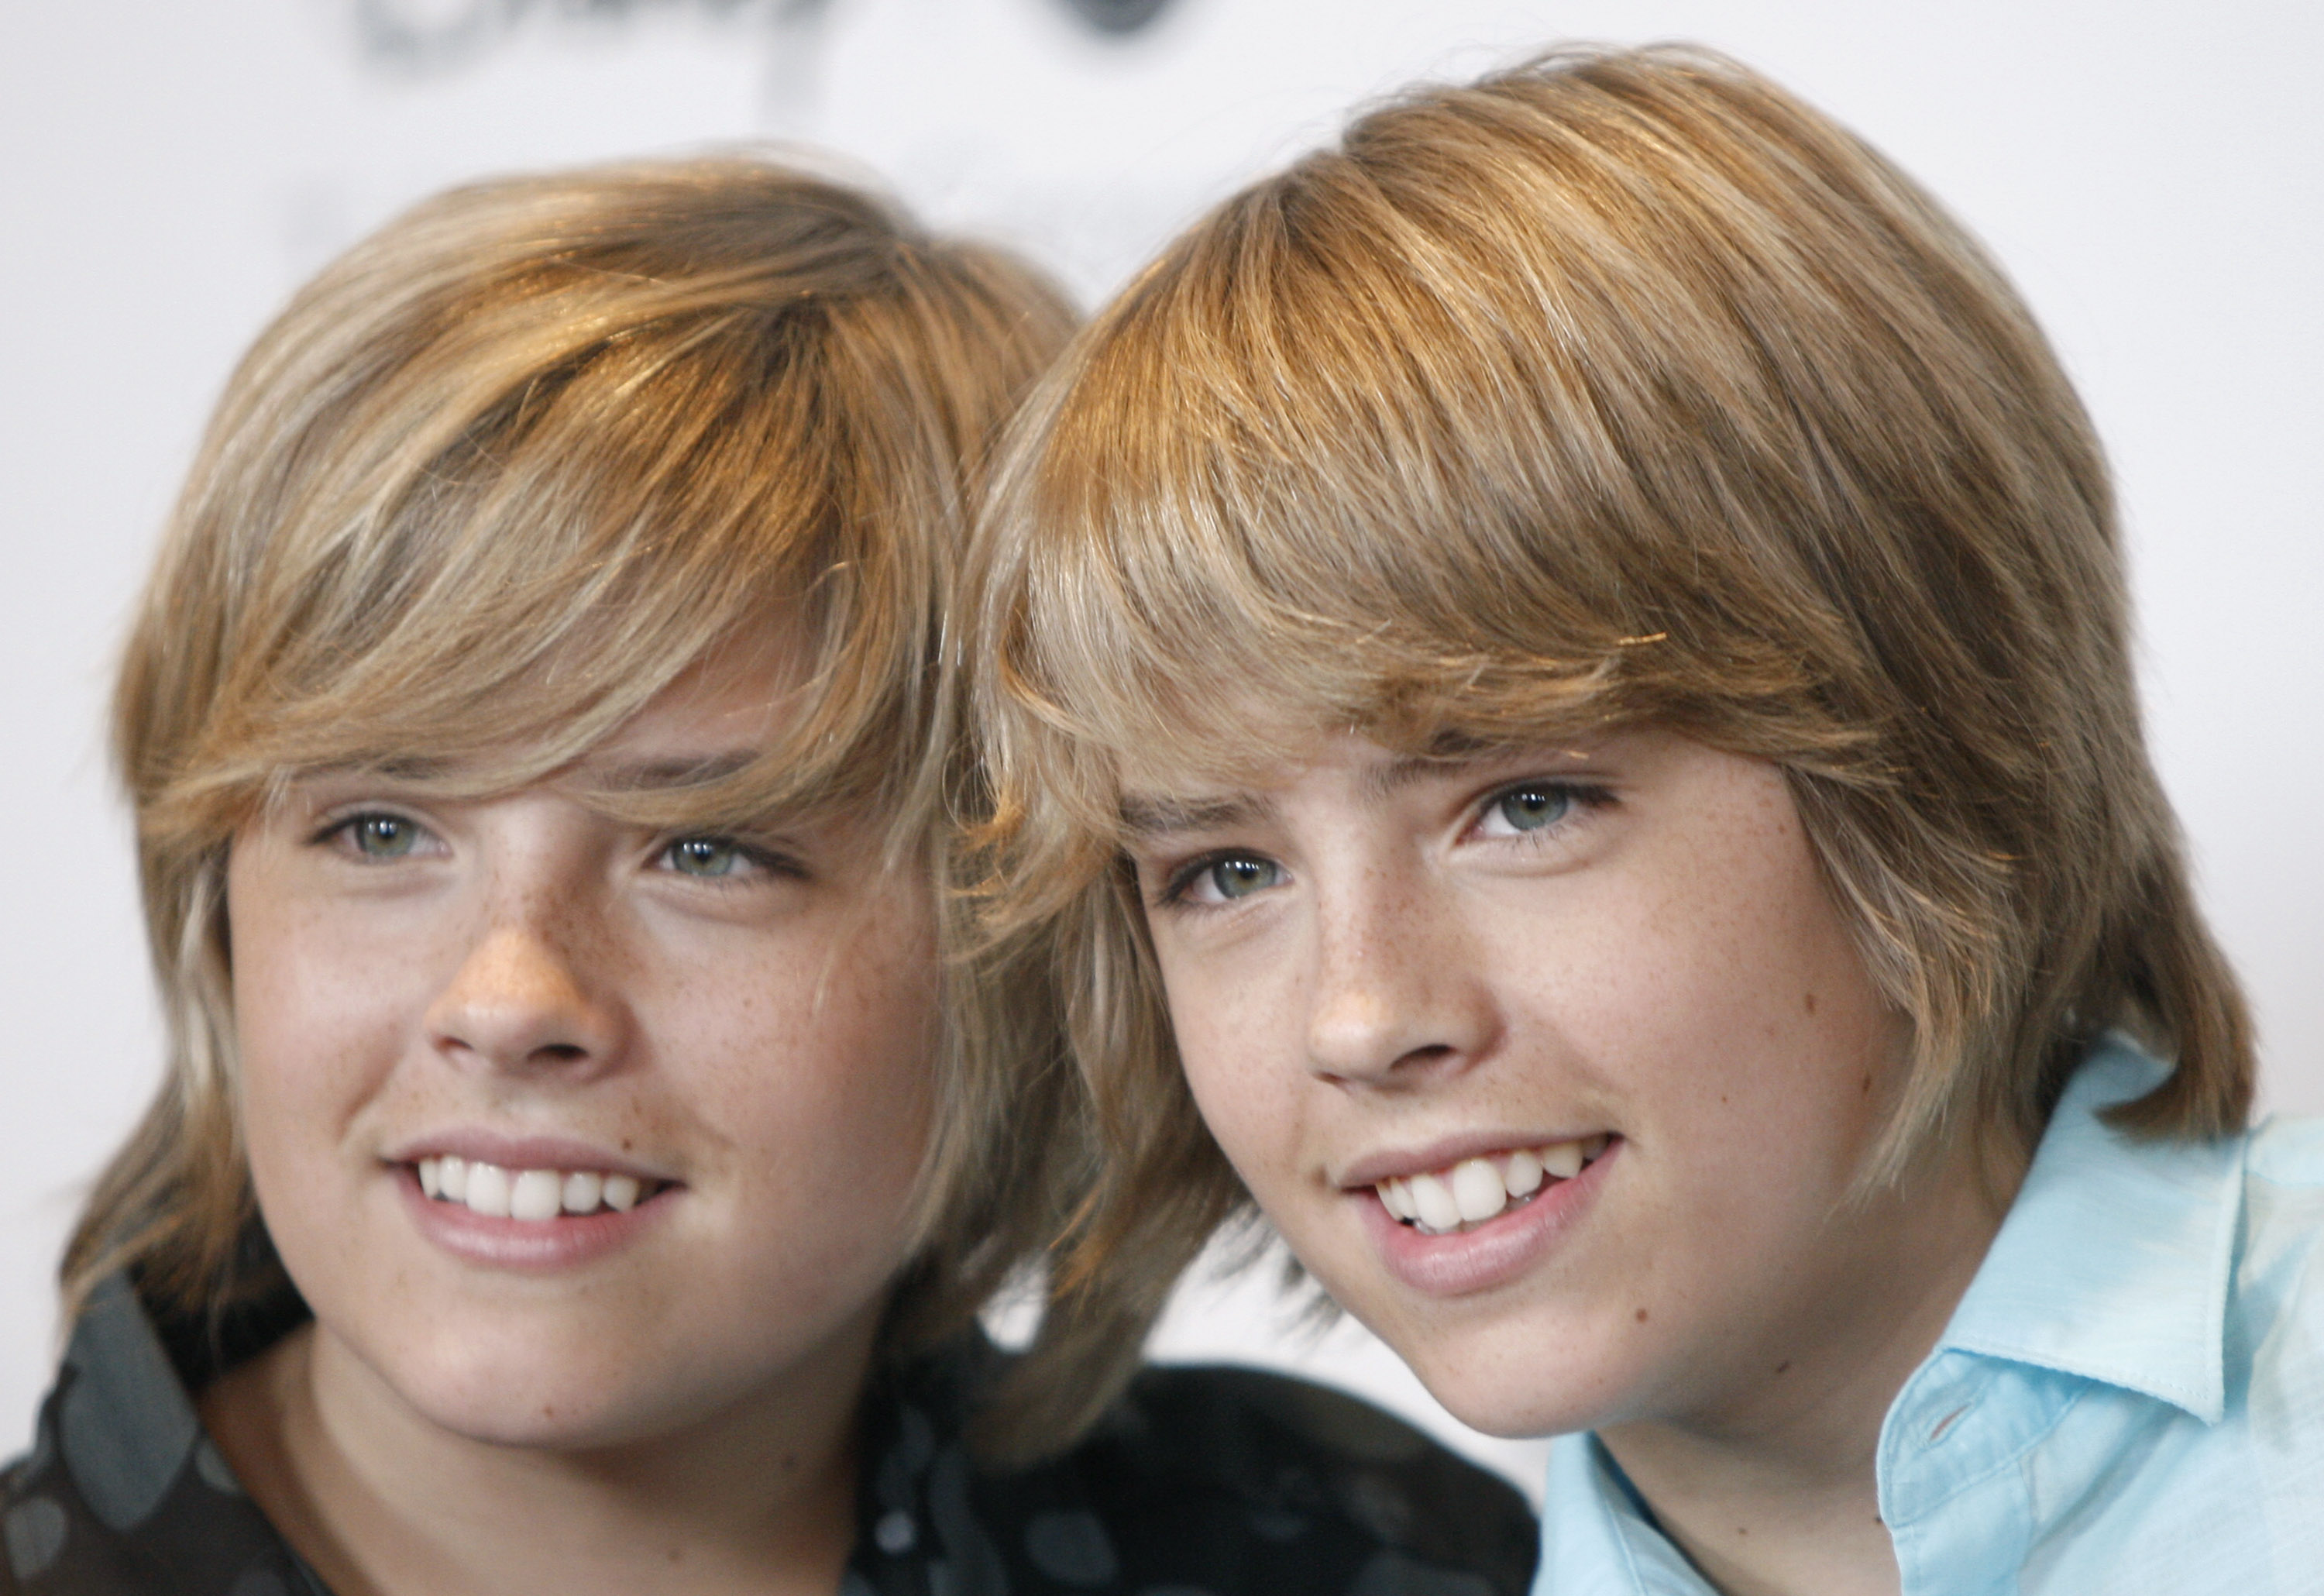 suite-life-of-zack-and-cody.jpg